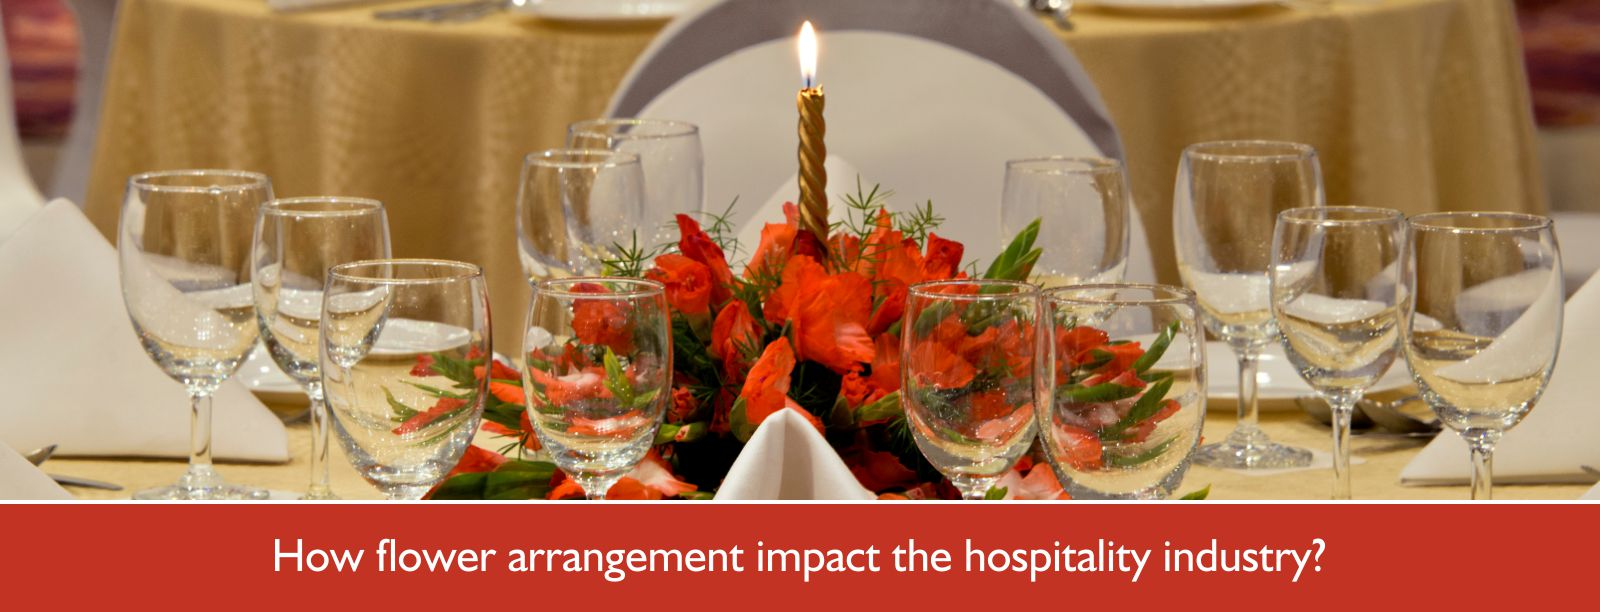 How flower arrangements impact the hospitality industry in 2019